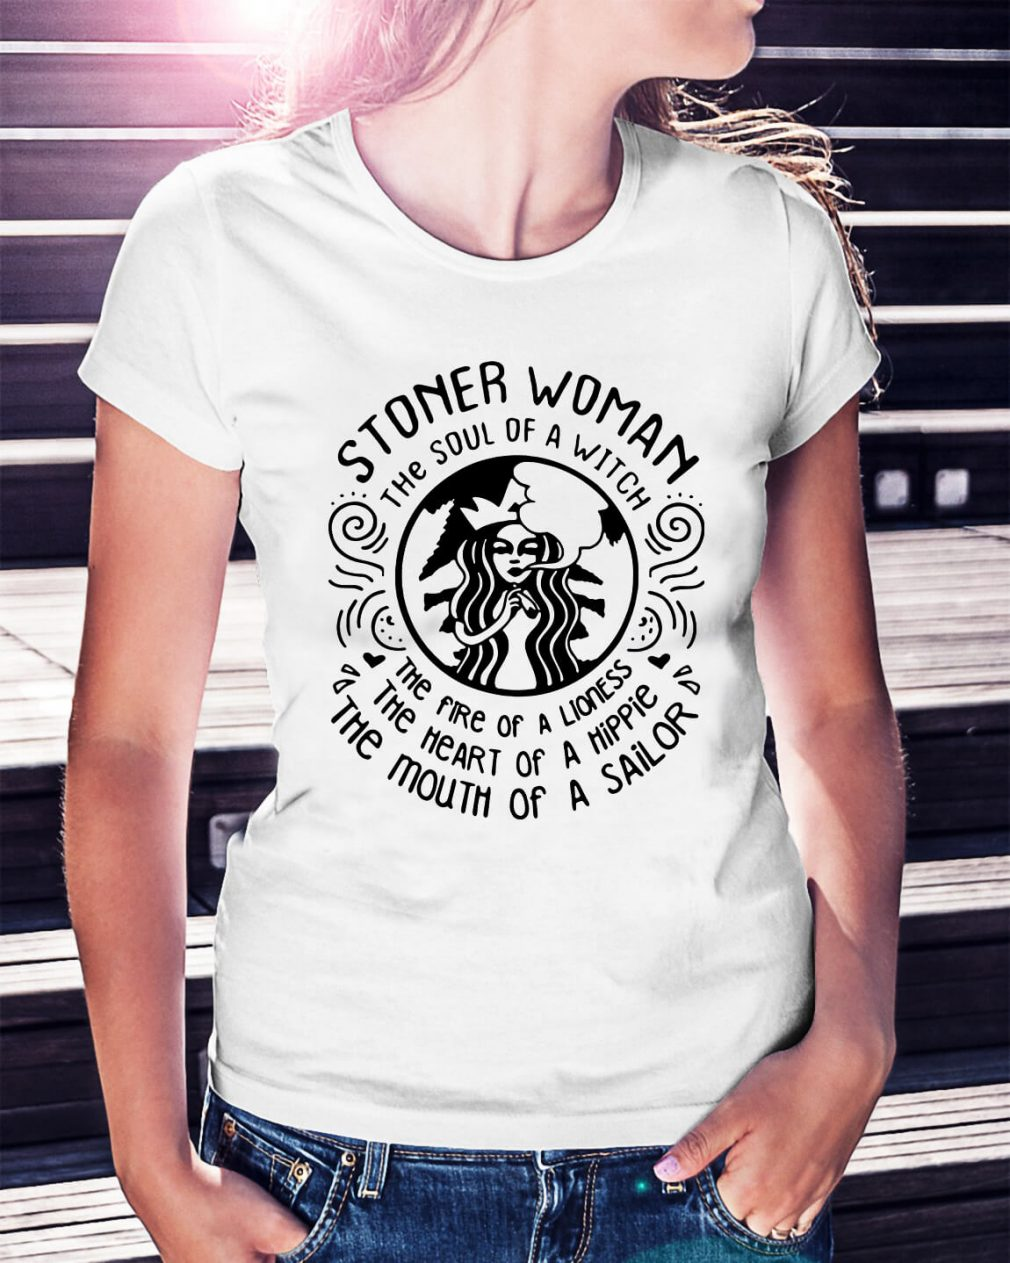 Stoner woman the soul of a witch the fire of a lioness Ladies Tee